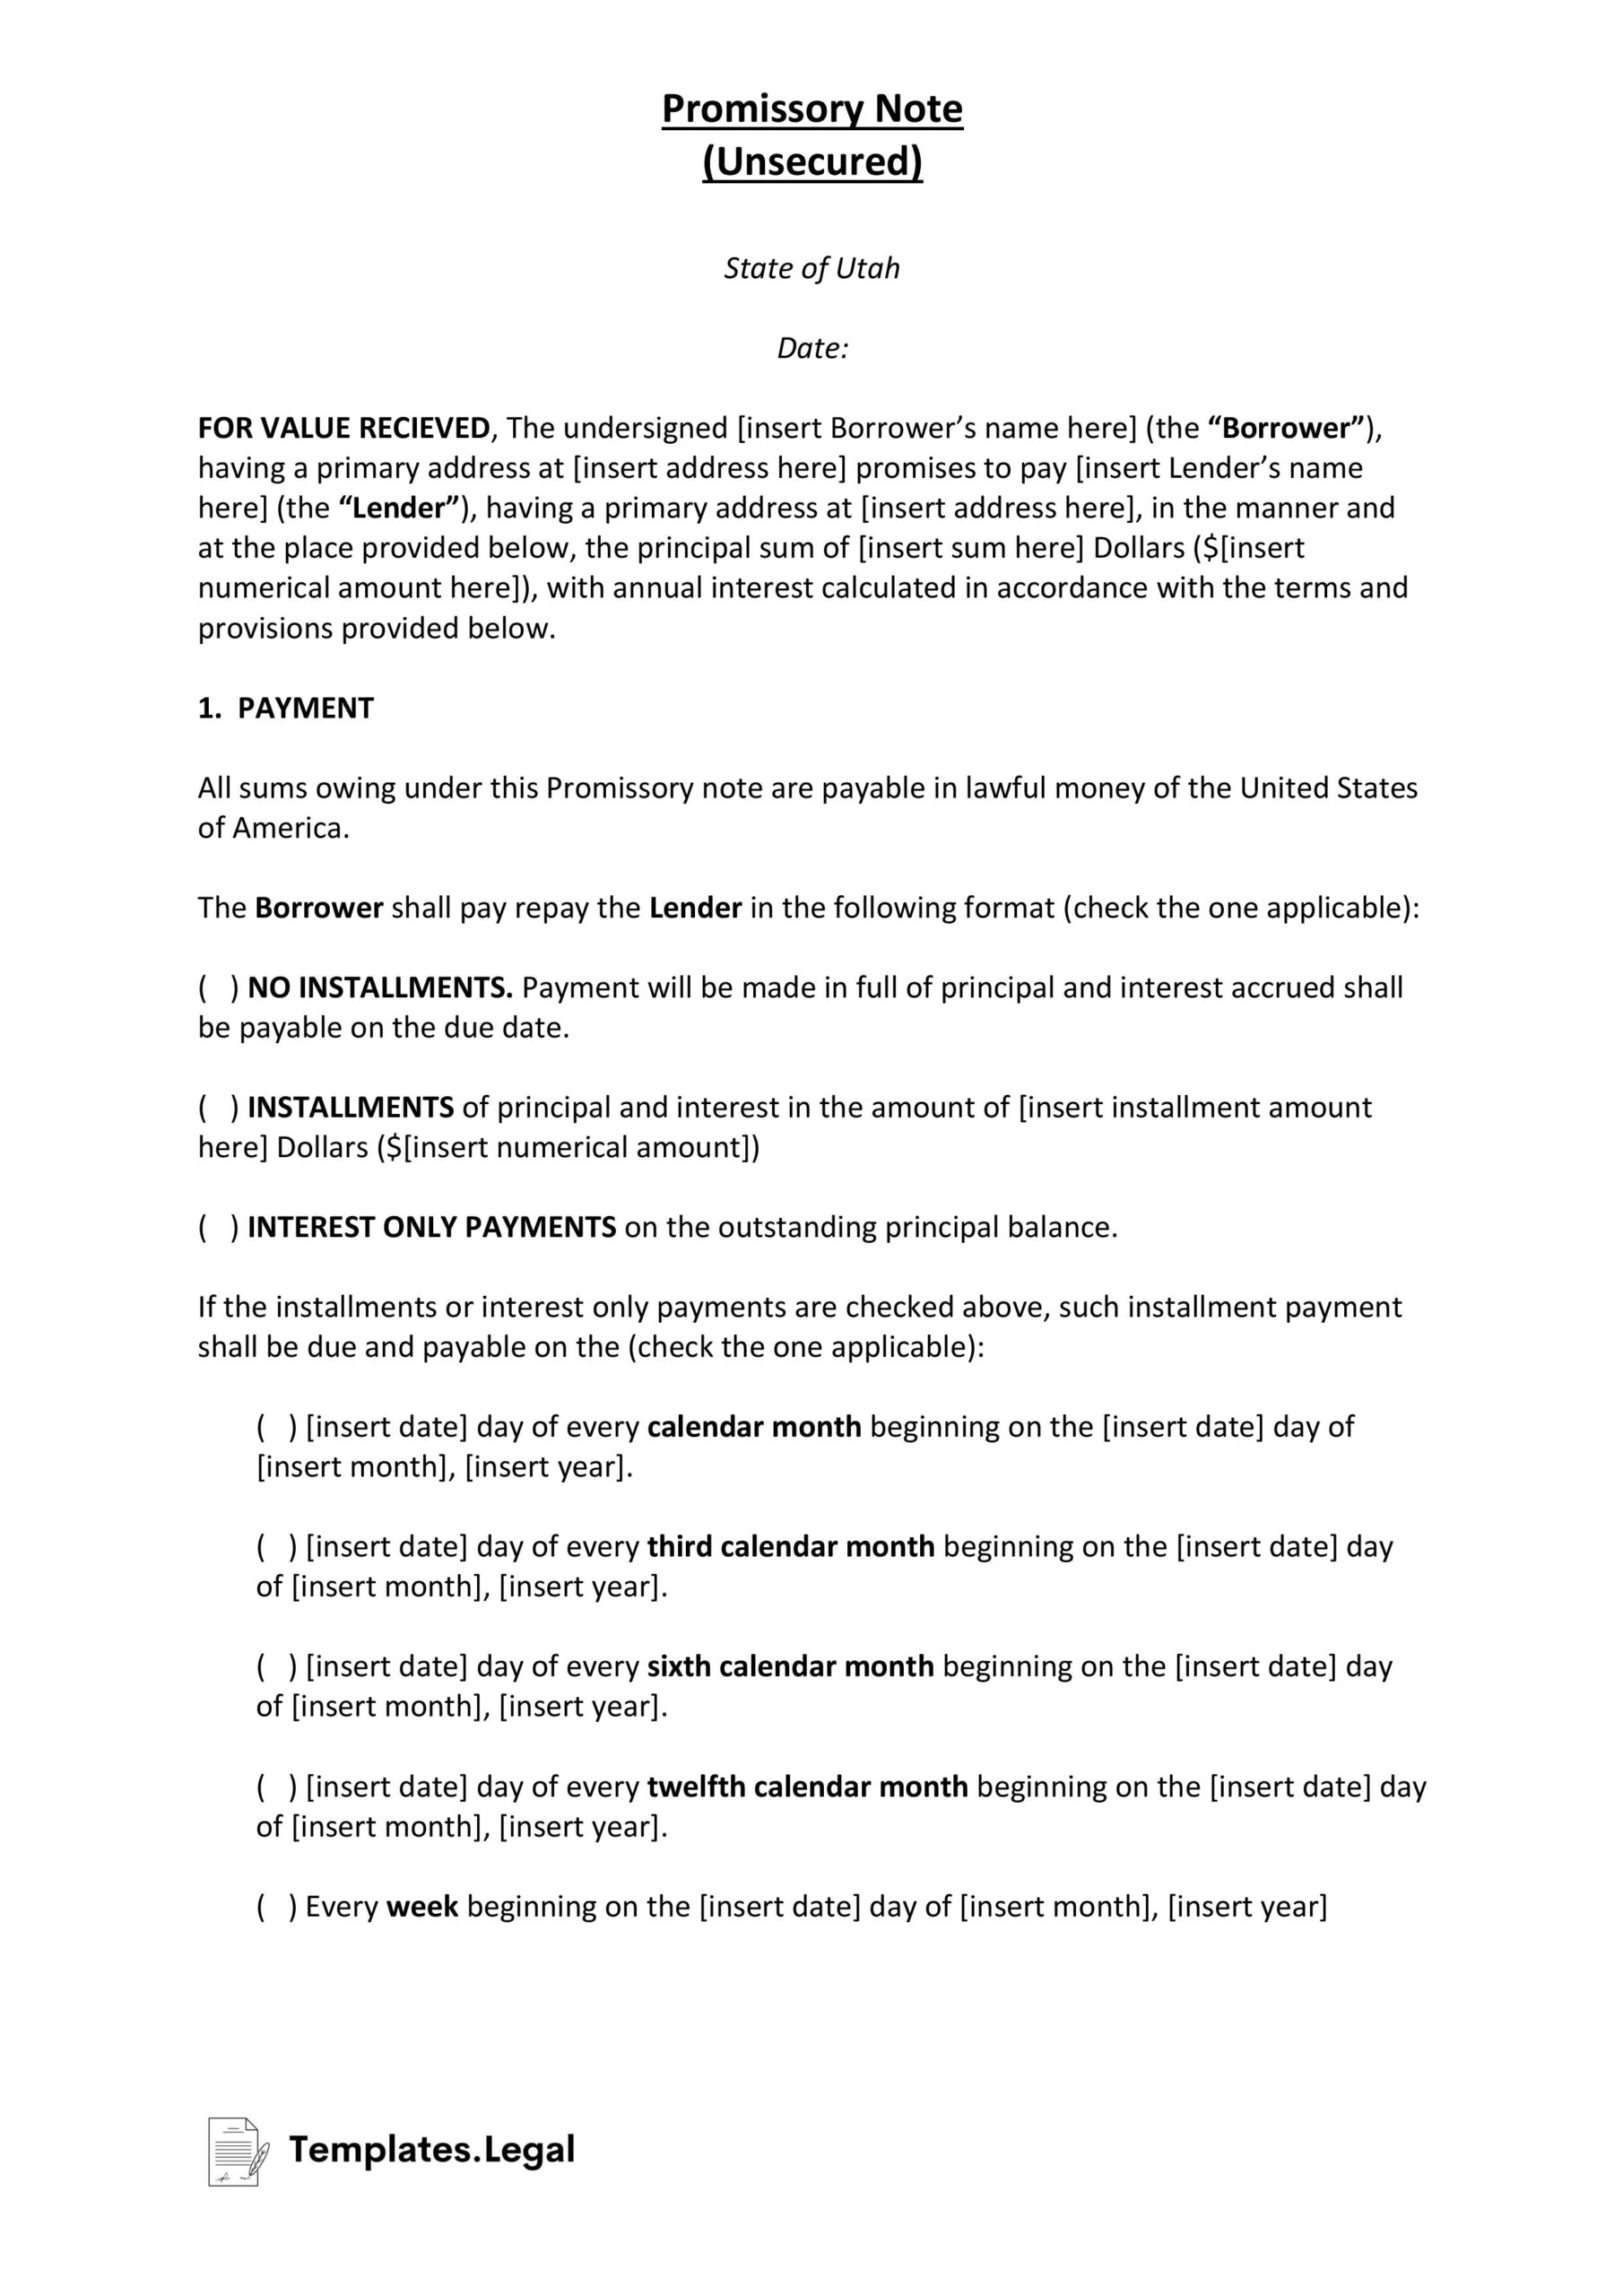 Utah Unsecured Promissory Note - Templates.Legal